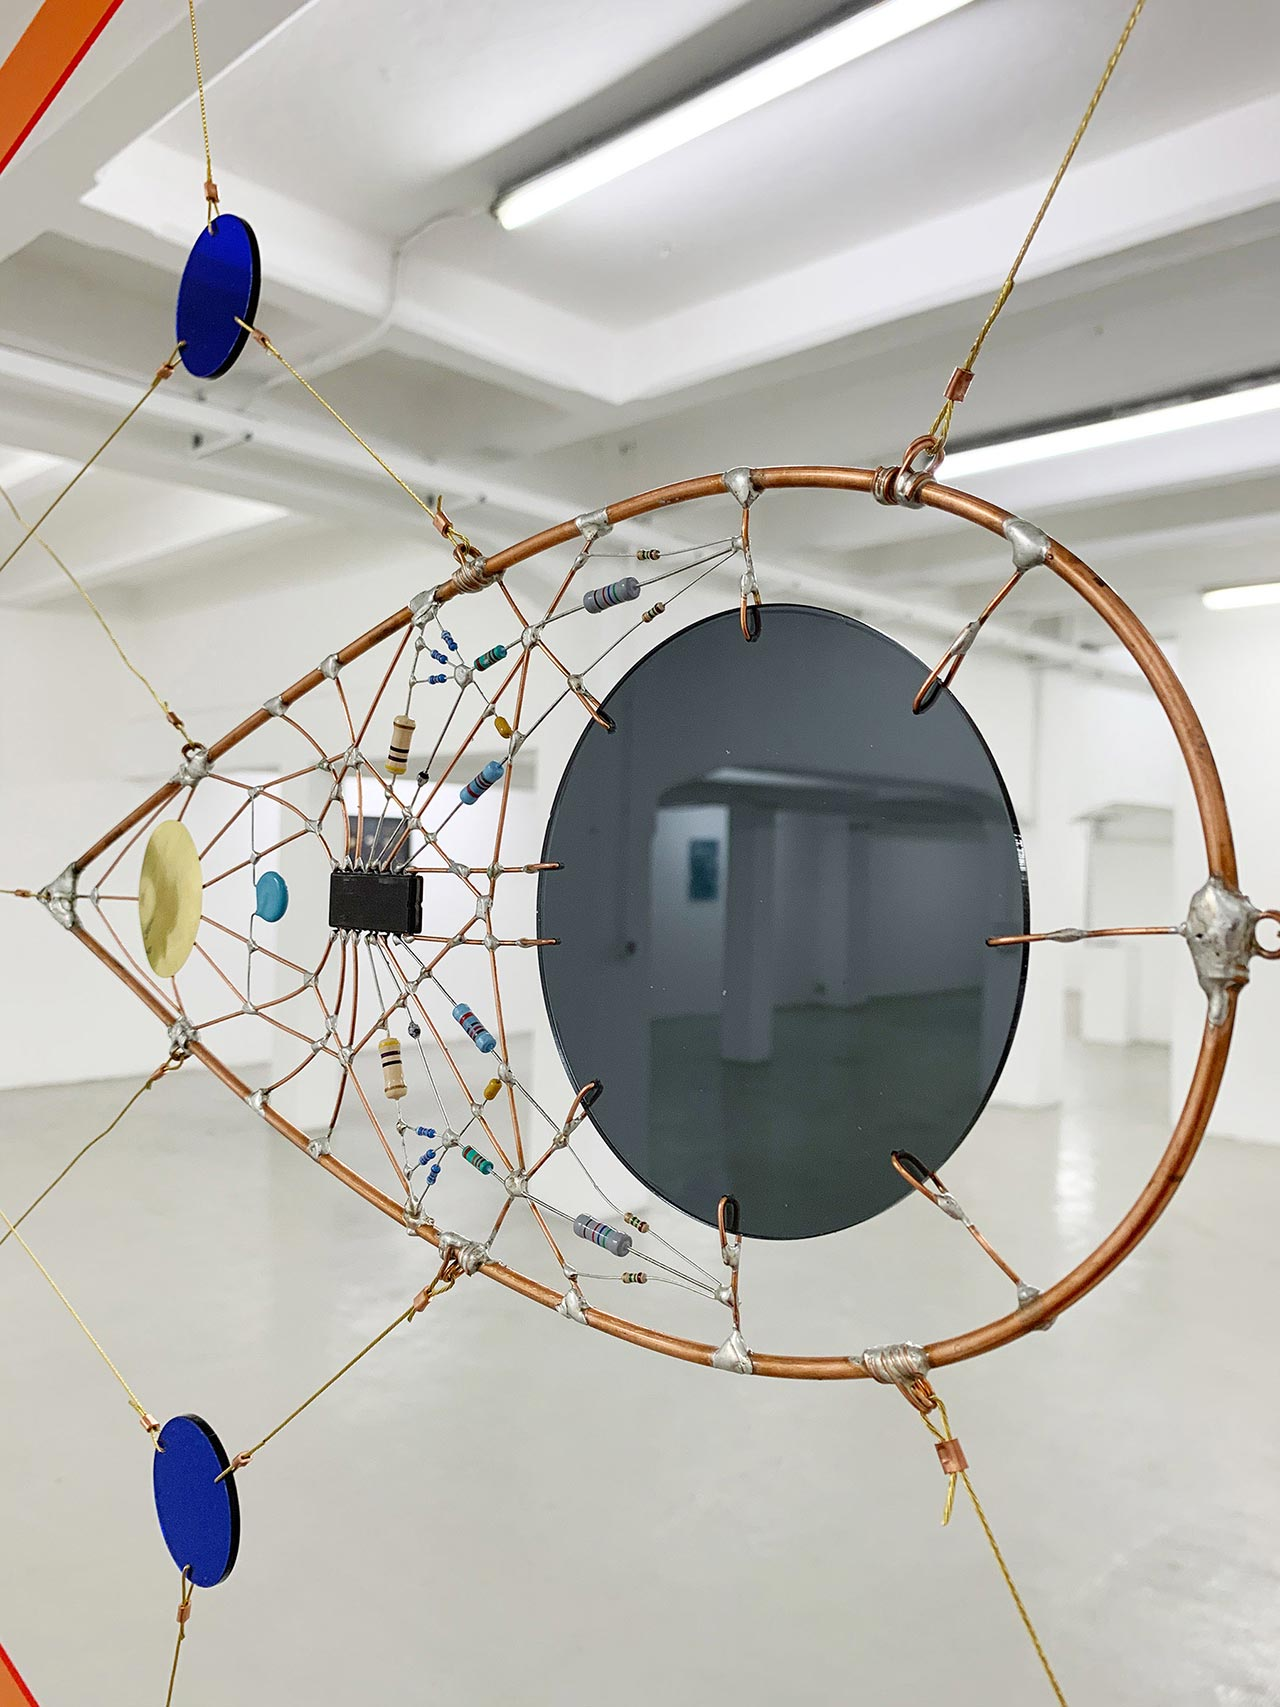 Technological Mandala 141 Perpetual nexus 00, 2019. Electronic components, copper wires, varnish, lead, acrylic paint, steel, transparent perspex, brass wire, copper ferules, turnbuckles, mobile phone, 325x458 cm | 128x18½ inches. Courtesy: The Flat – Massimo Carasi.Photo by The Flat.